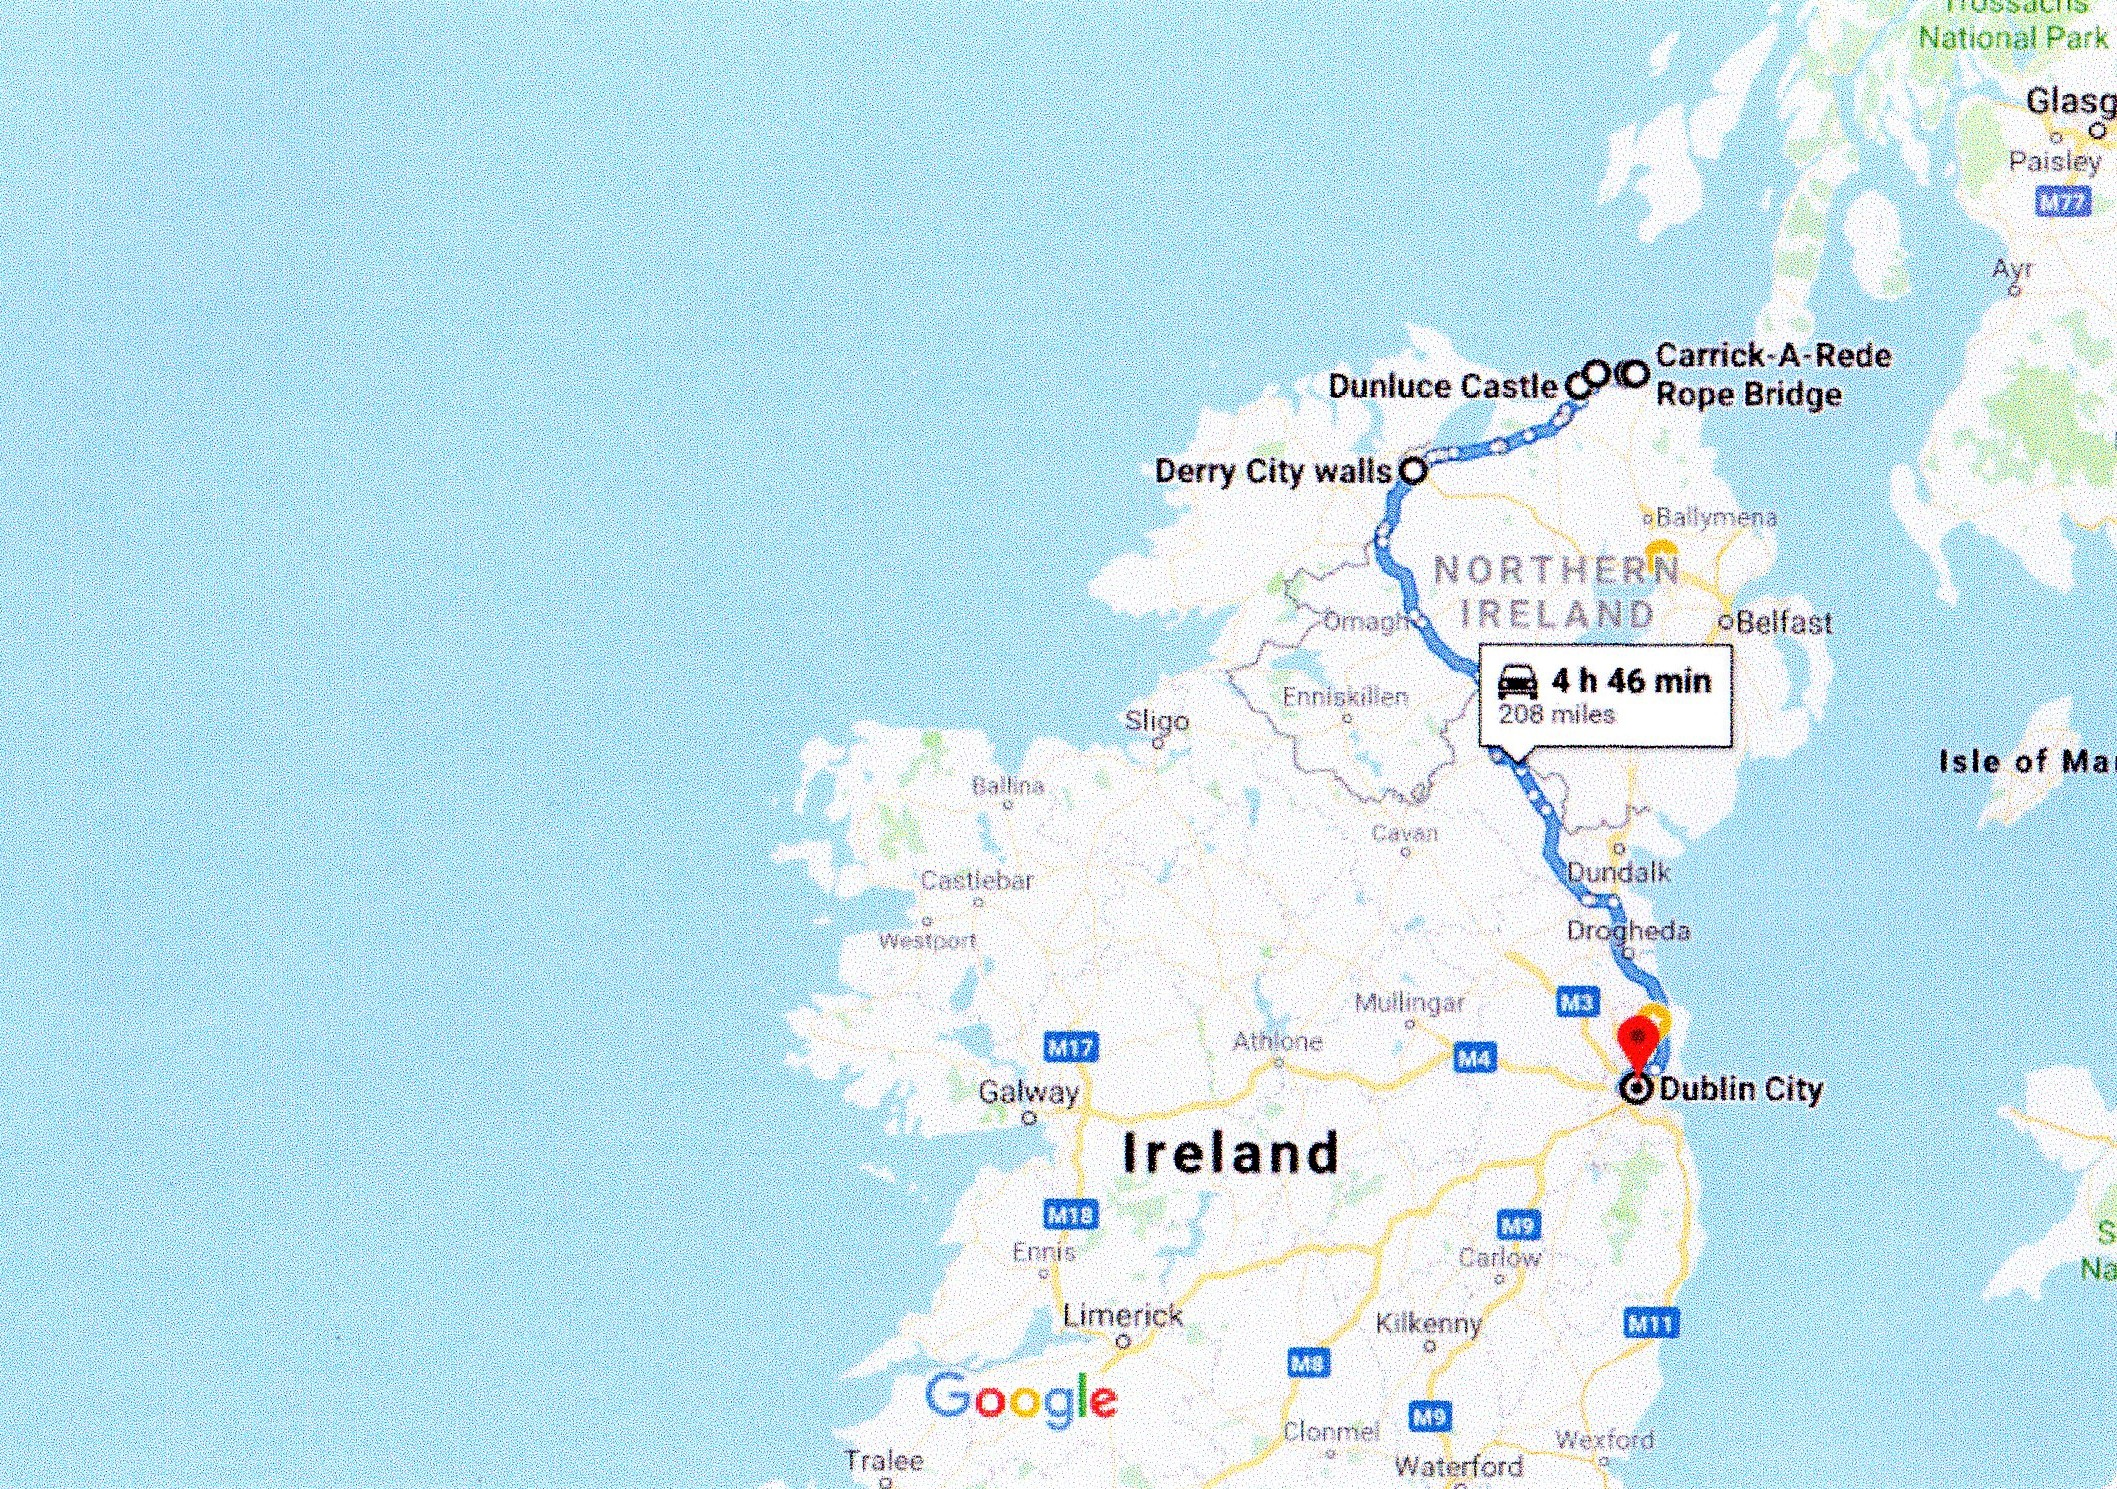 Google road map Ballycastle to dublin via the derry walls